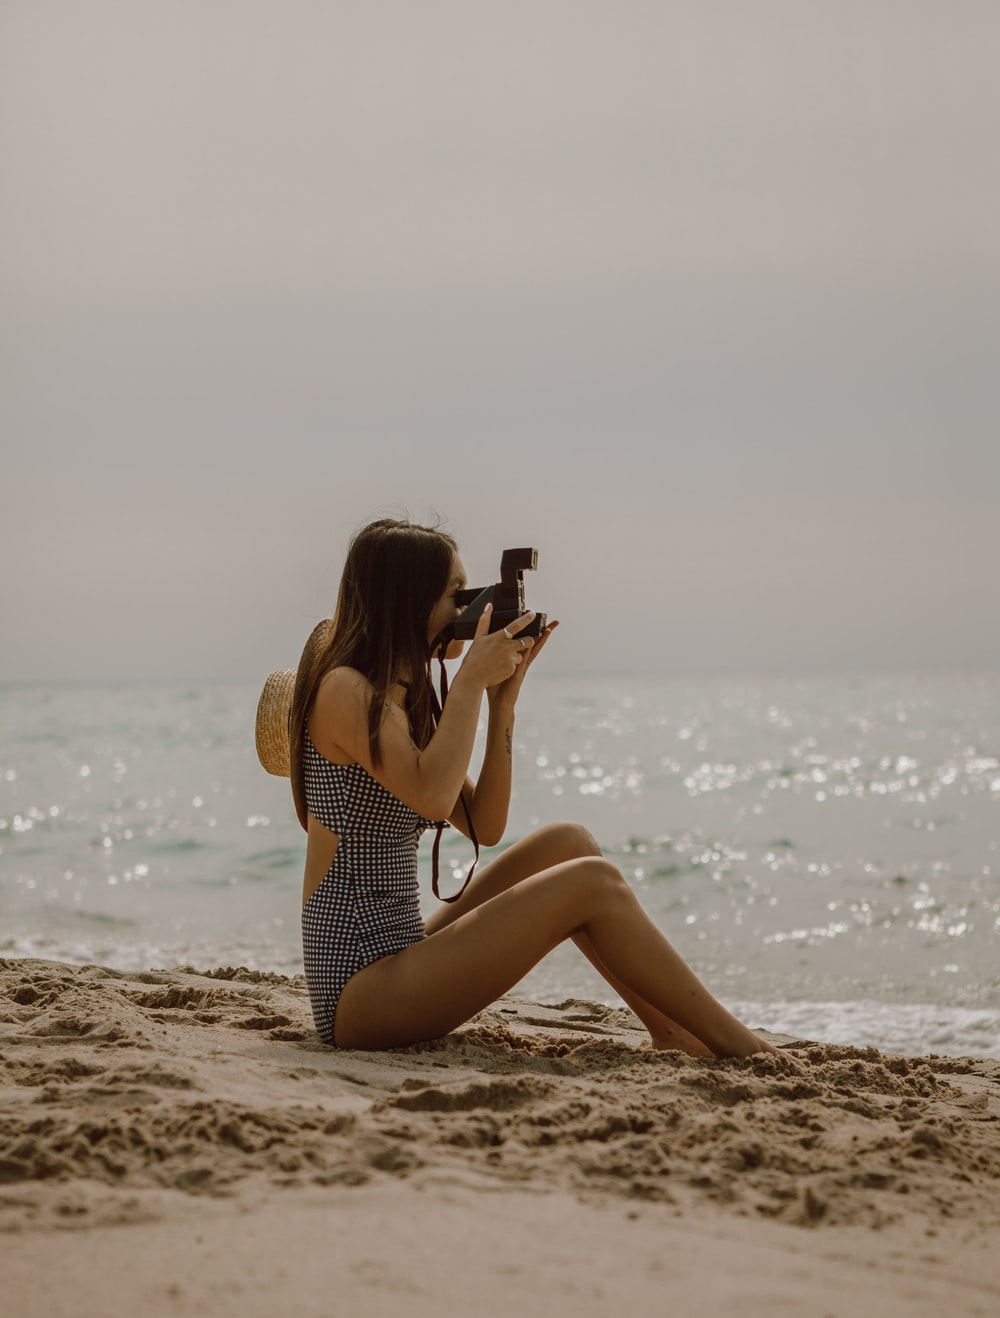 woman in black and white polka dot swimsuit sitting on beach shore during daytime